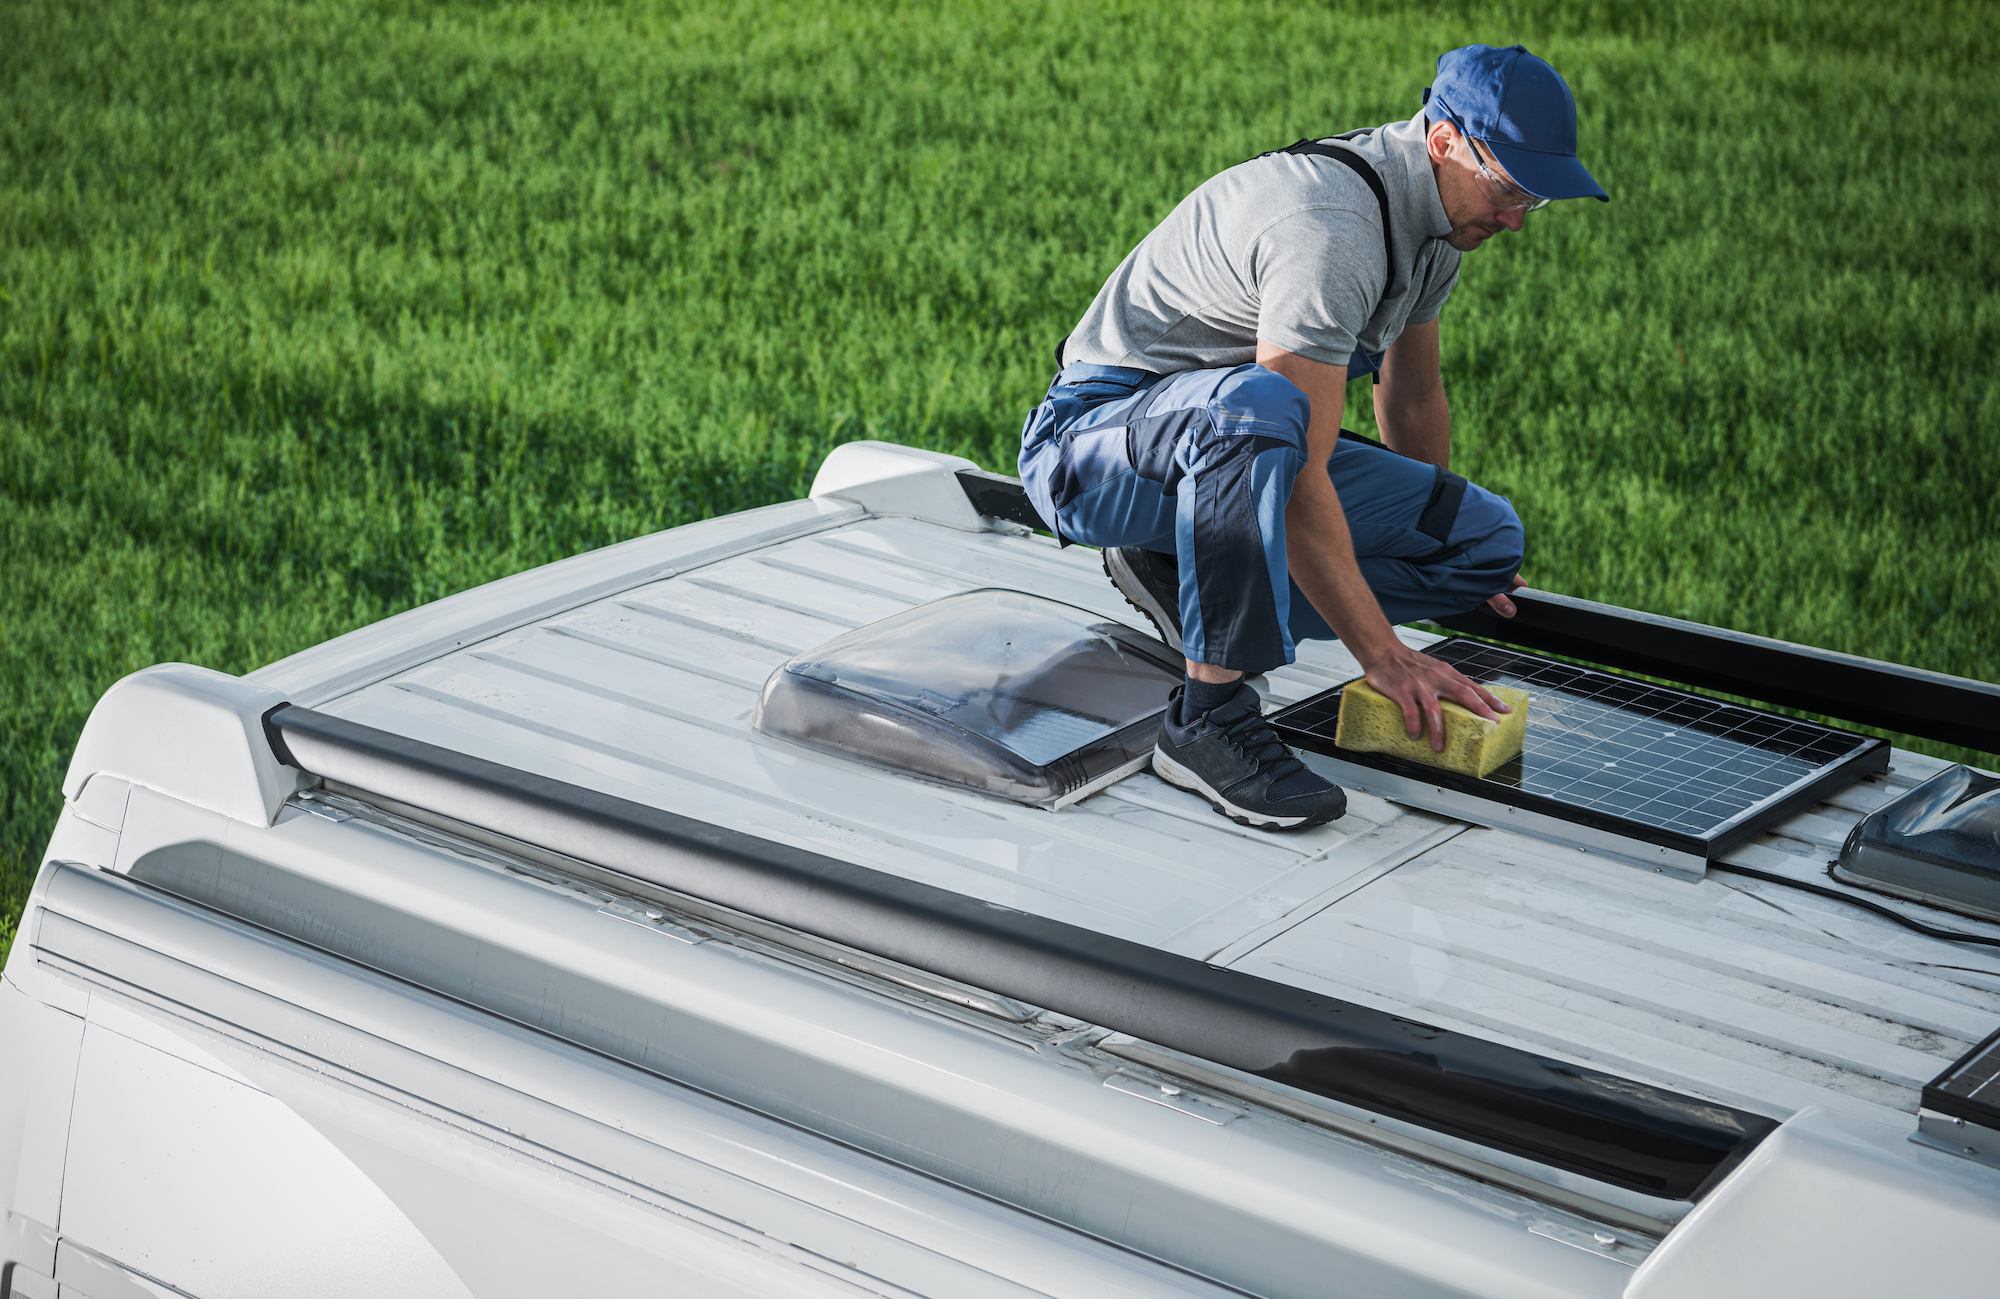 Caucasian Men in His 40s Cleaning Camper Van RV Roof Installed Solar Panels Using Sponge and Soft Washing Detergent. Motorhome Maintenance. RV Industry Theme.